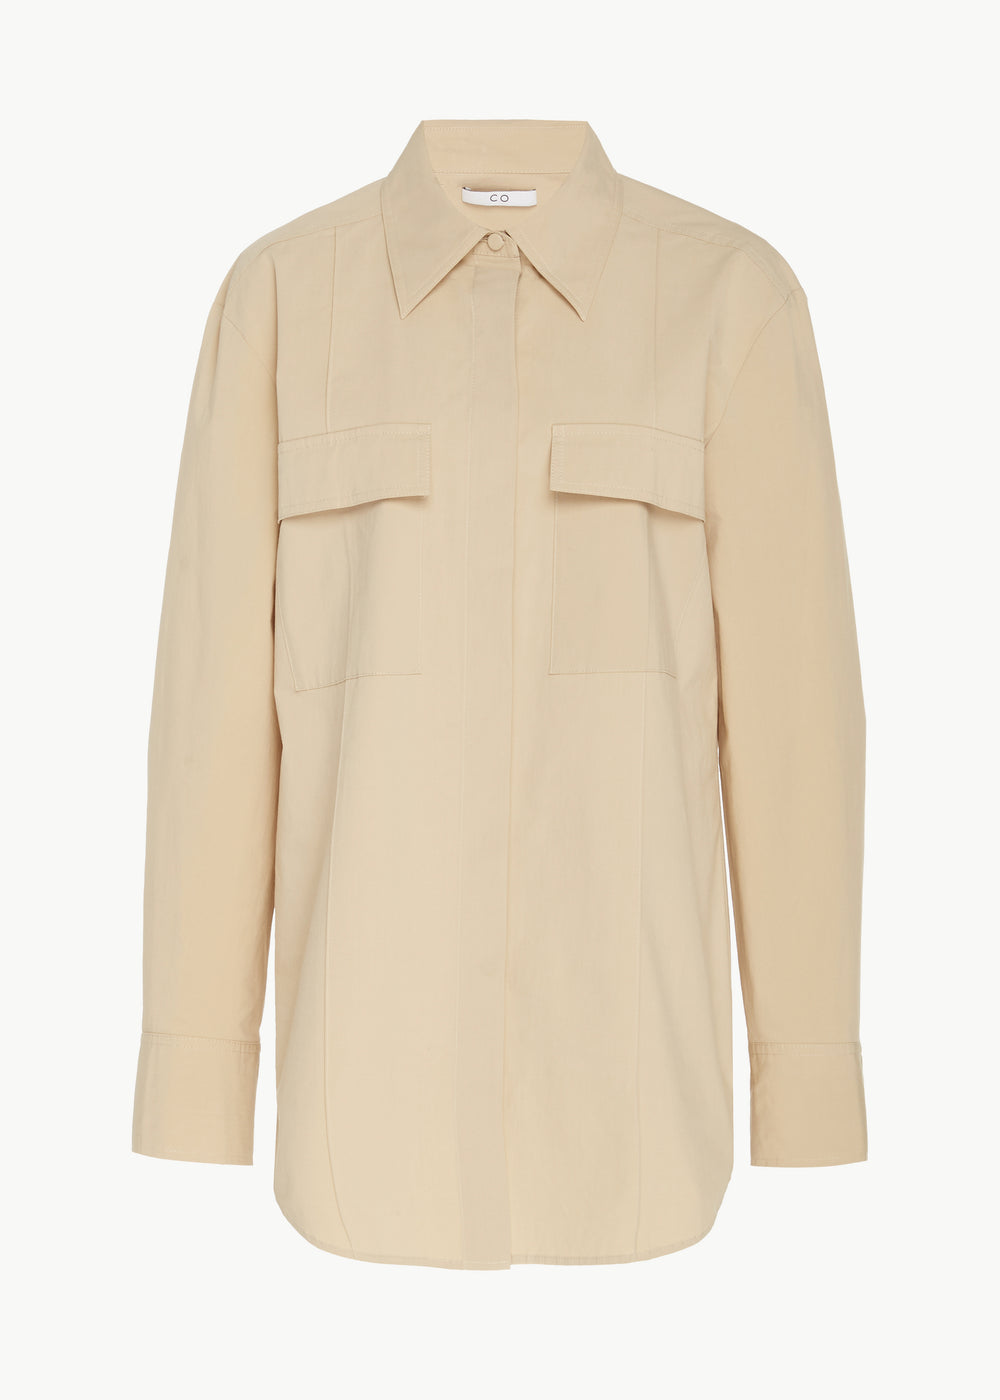 Utility Shirt in Winter Poplin - Sand - CO